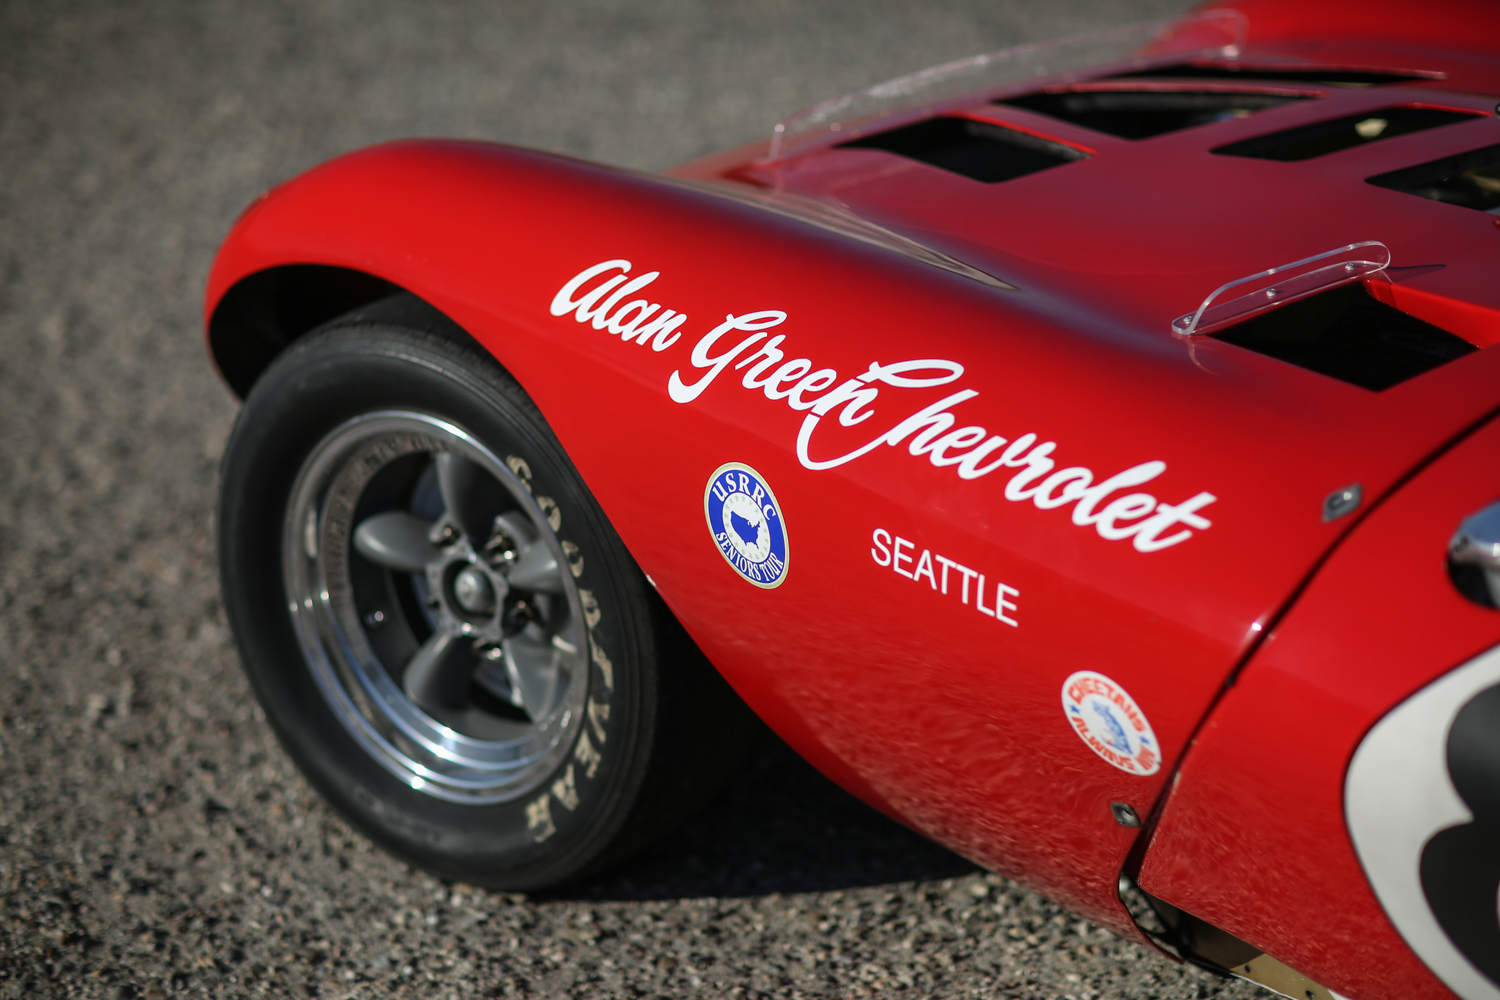 bill thomas cheetah front fender